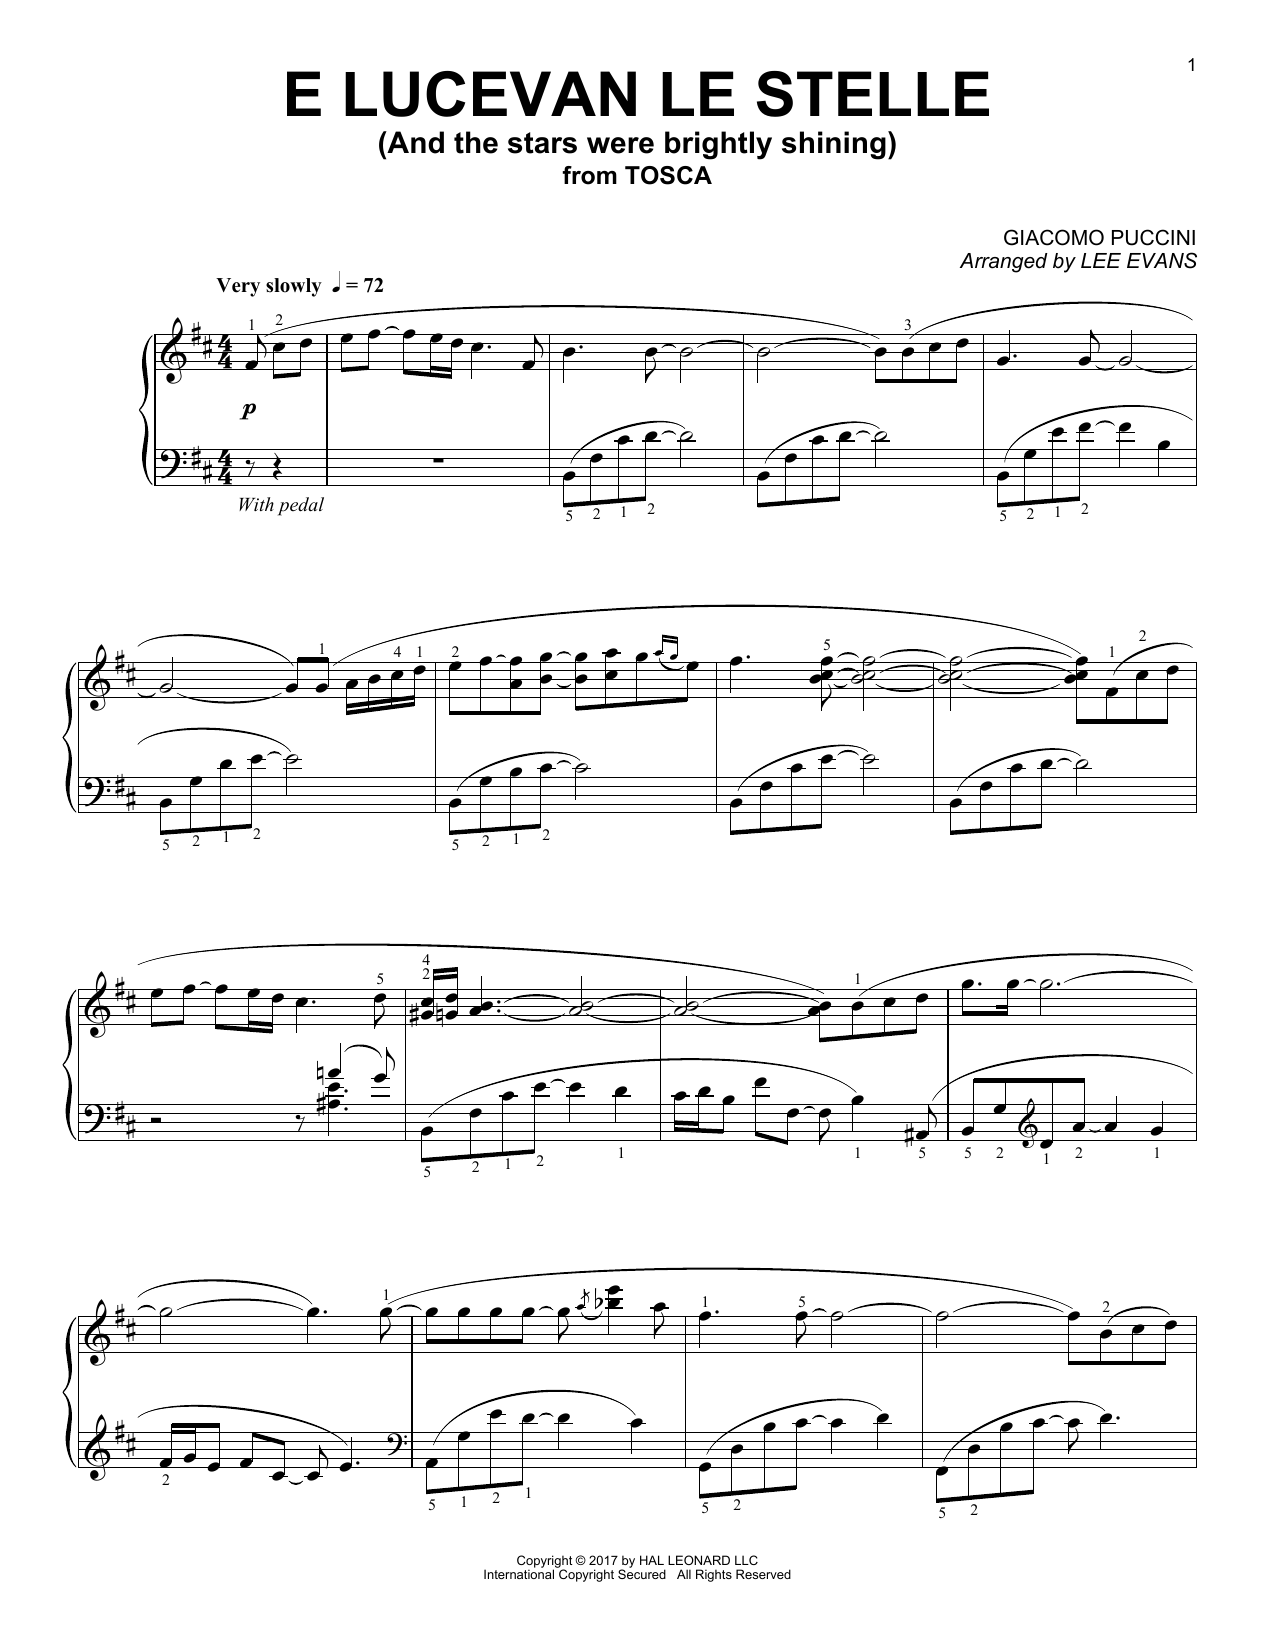 E lucevan le stelle from Tosca (arr. Lee Evans) (Piano Solo)